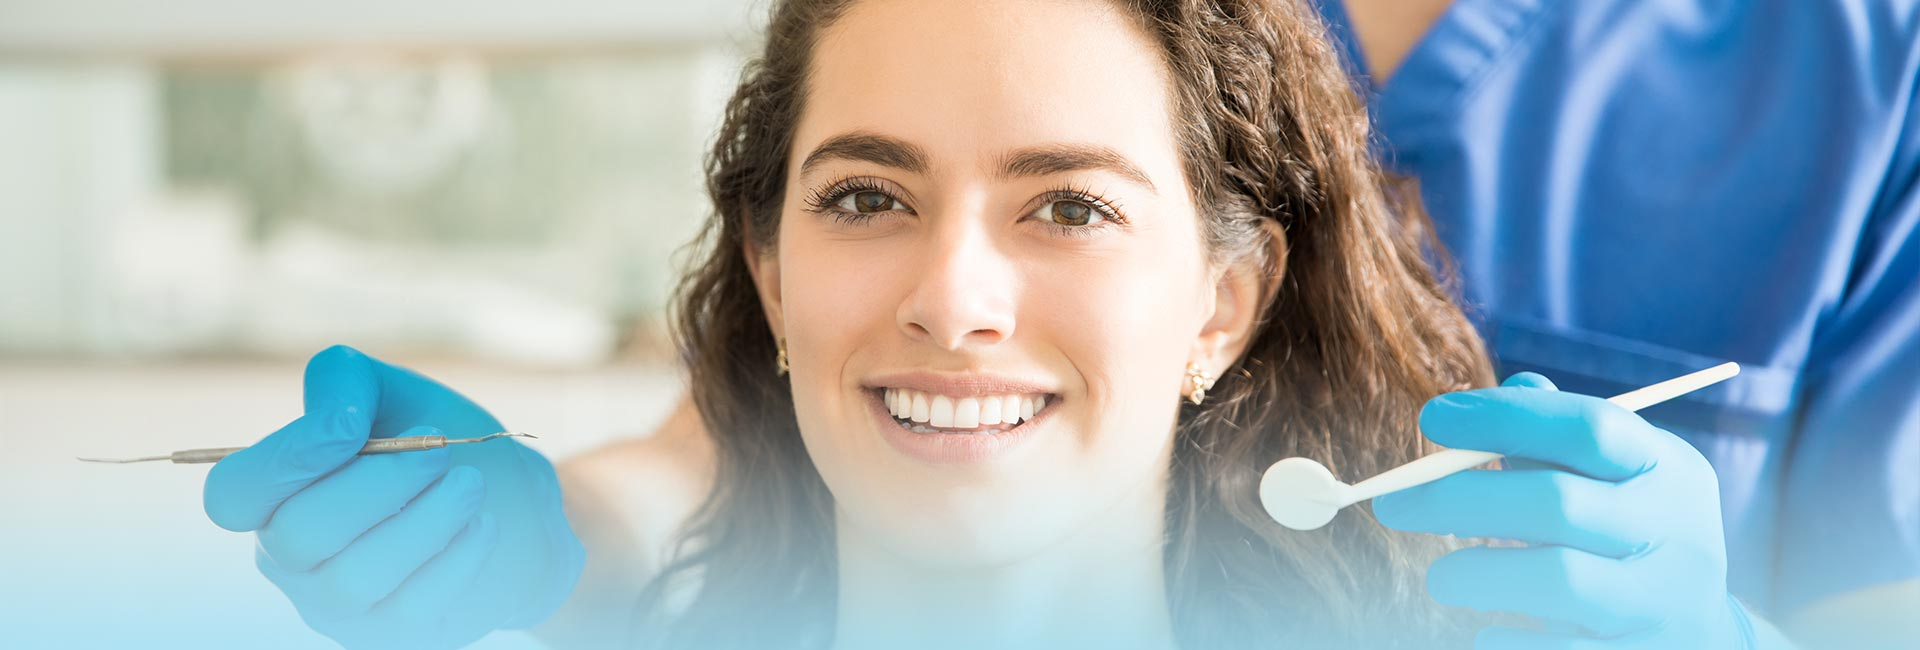 Woman smiling after smile design